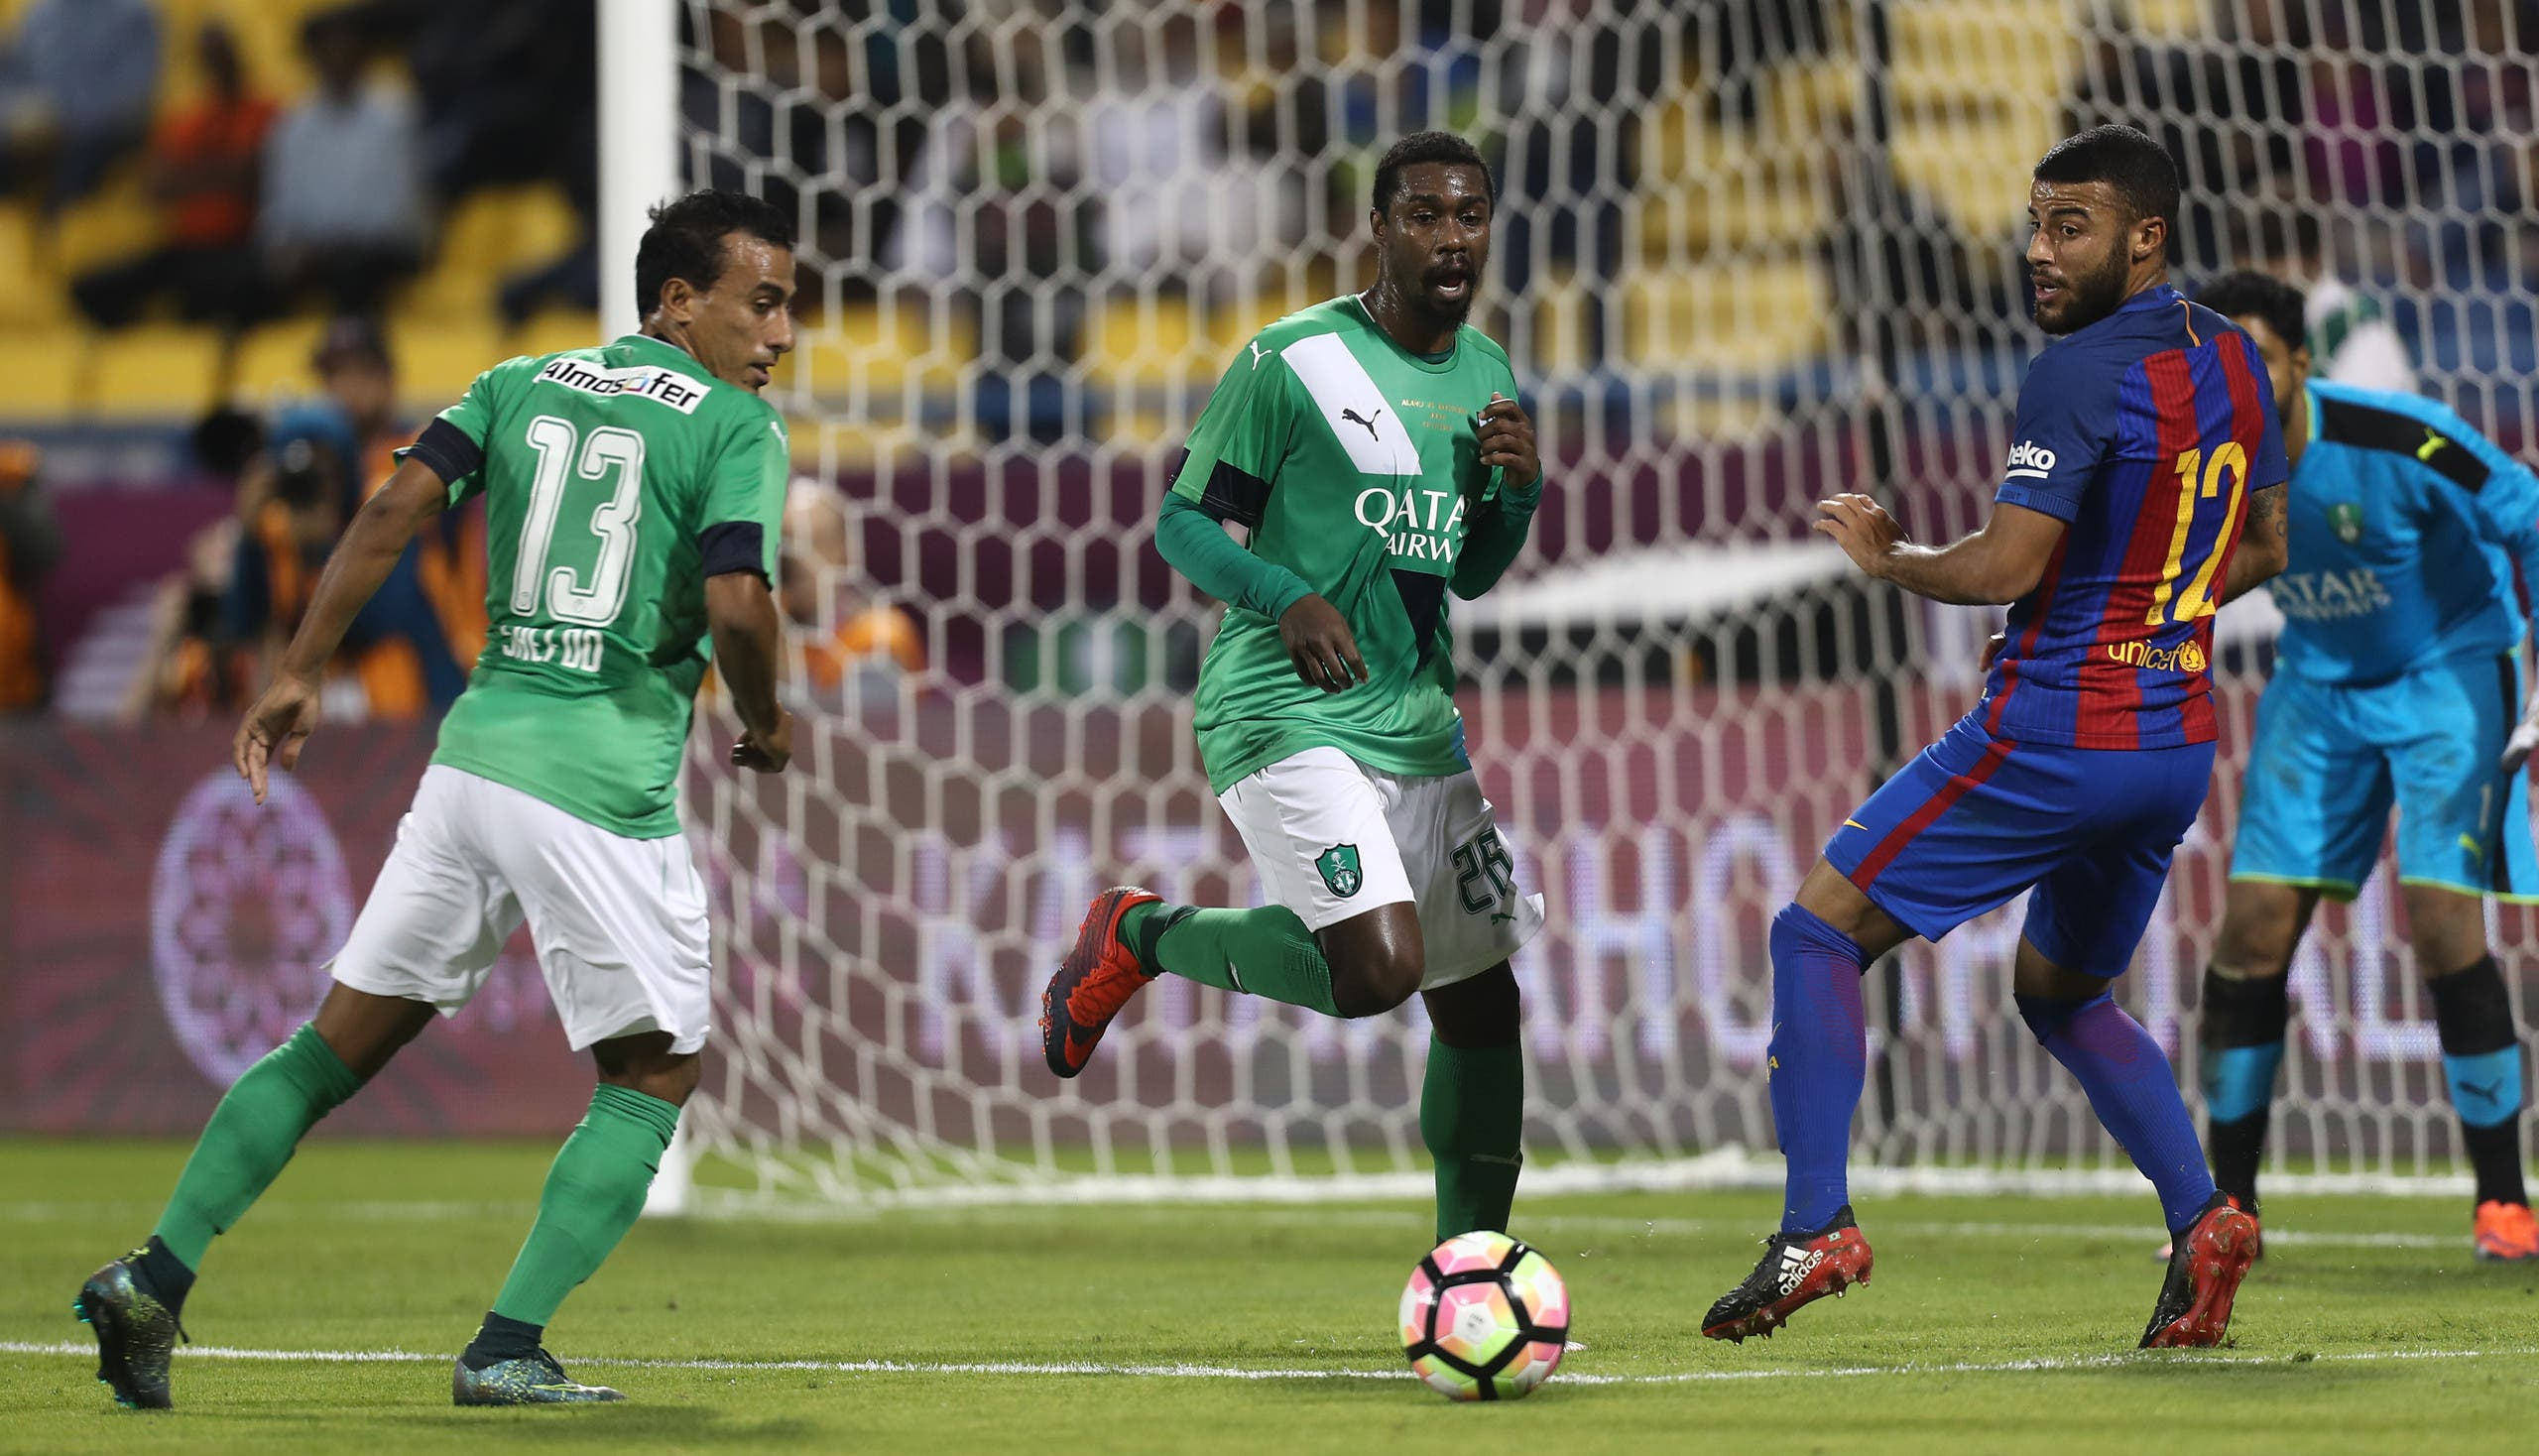 FC Barcelona's Rafinha vies for the ball with Al-Ahly's Mohamed Abdel Shafy and Mohamed Aman during a friendly football match between FC Barcelona and Saudi Arabia's Al-Ahli FC on December 13, 2016 in the Qatari capital Doha. (AFP)